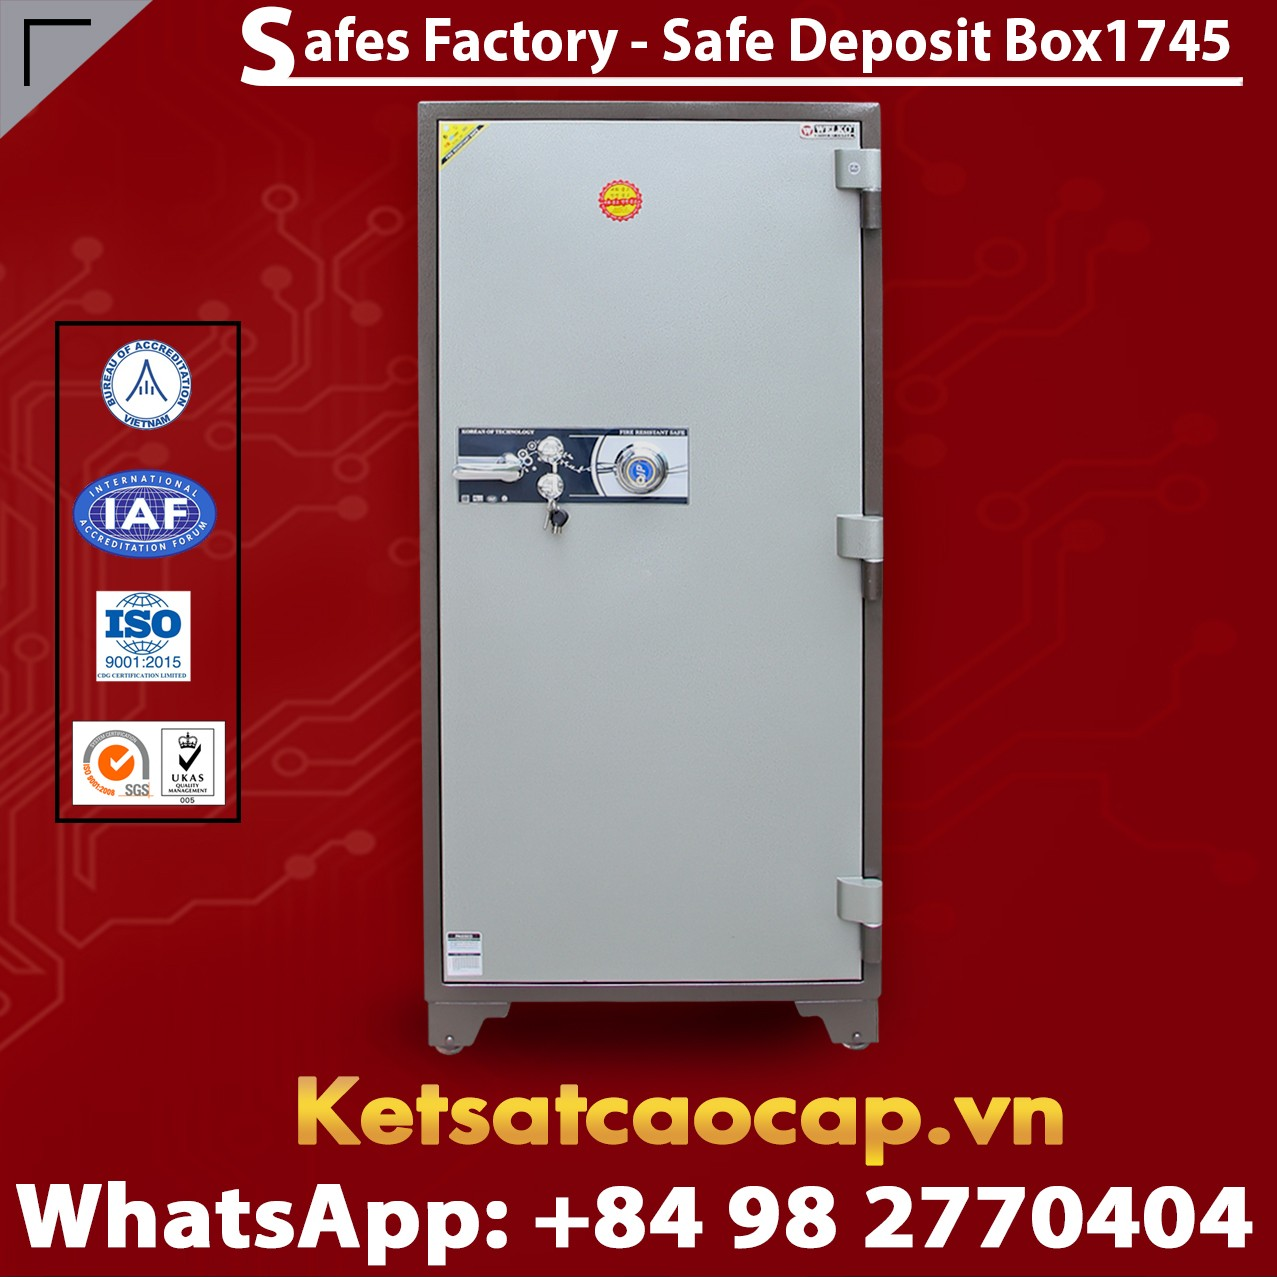 Bank Deposit Safes LX1745 Newest Design Secure For The Banking System